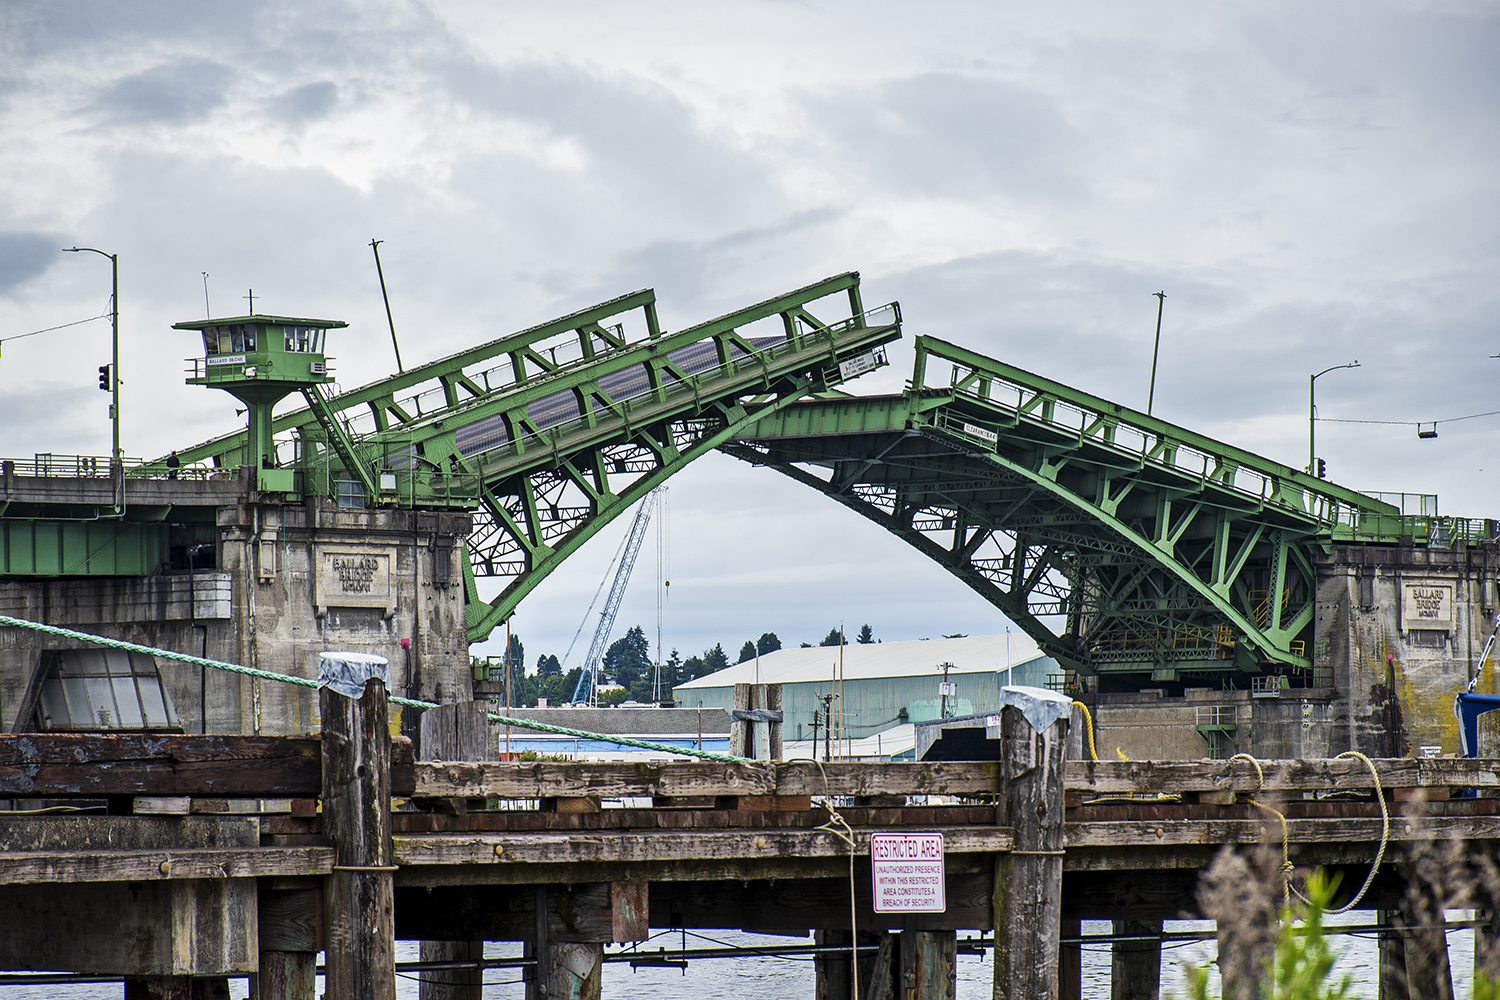 Also known as the 15th Avenue Bridge, the Ballard Bridge is a double-leaf bascule bridge situated over Seattle's Salmon Bay. Like the Fremont Bridge, the Ballard bridge opens frequently to allow tall boats to pass beneath.{ }(Image: Rachael Jones / Seattle Refined)